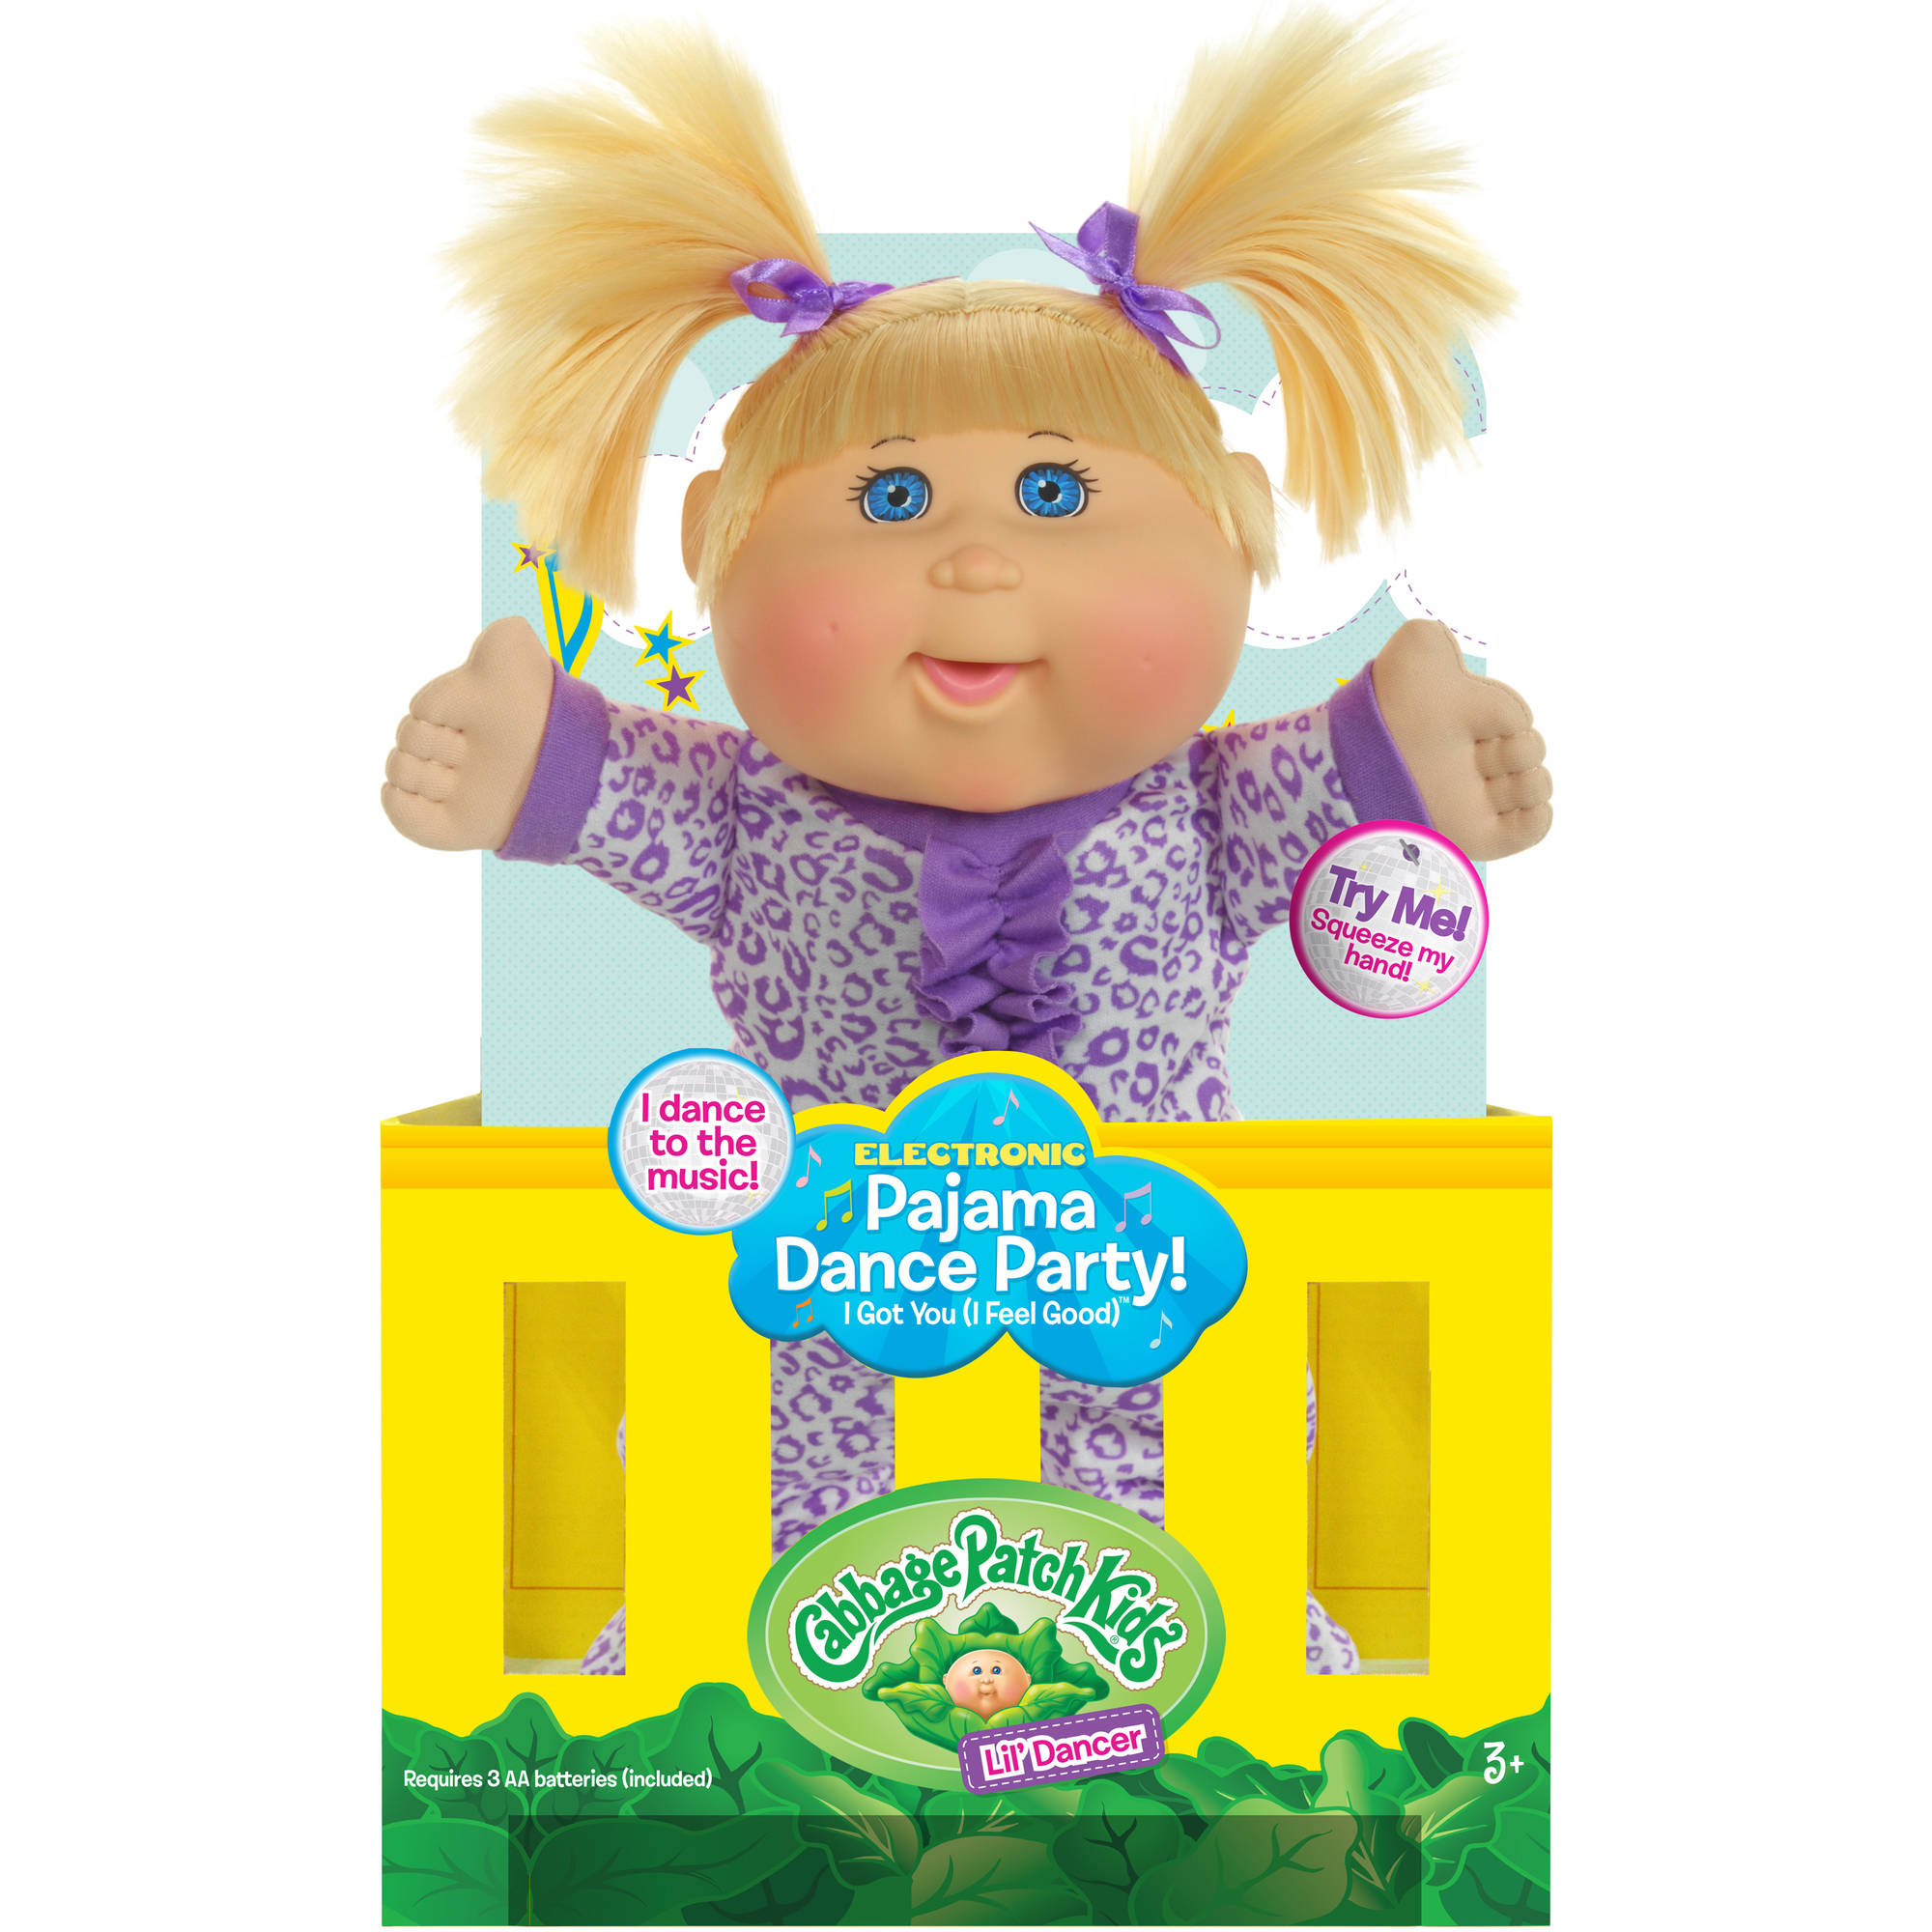 Cabbage Patch Kids Pajama Dance Party Doll, Blonde Hair/Blue Eye Girl